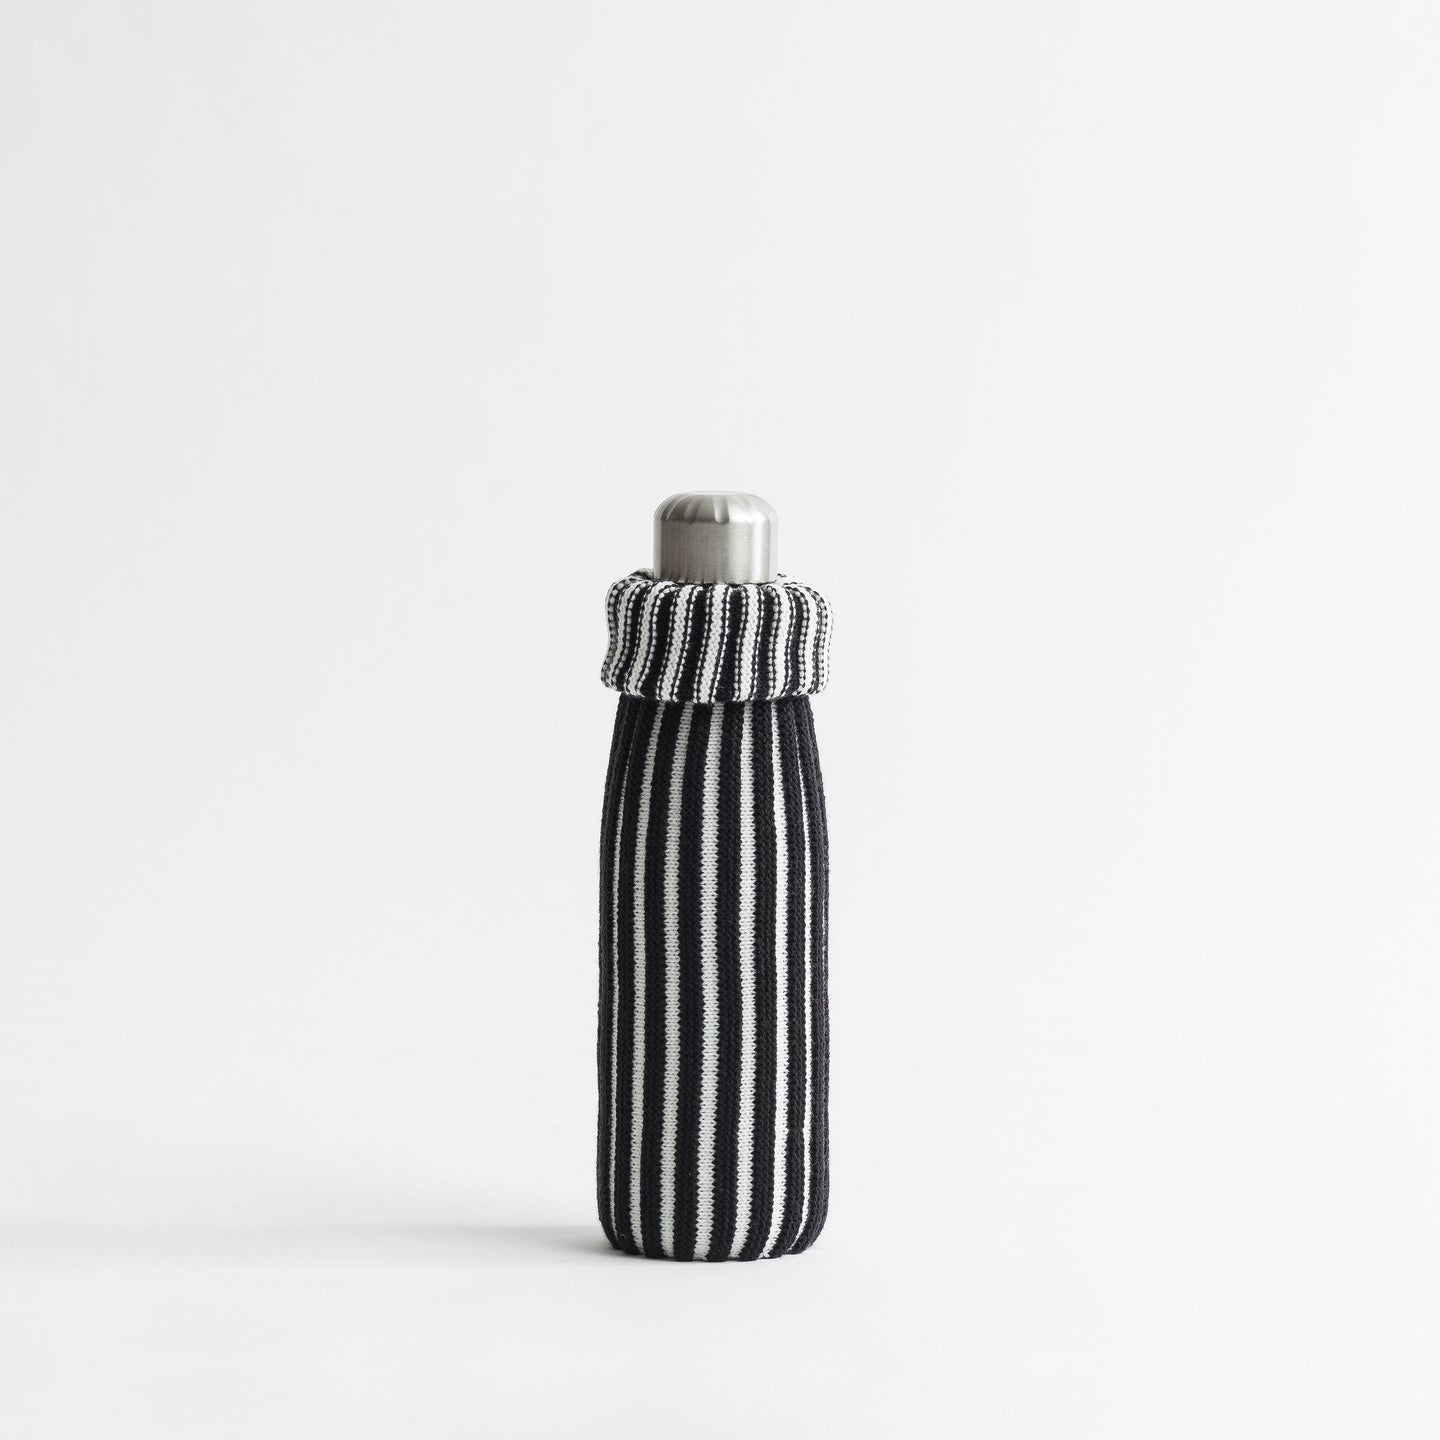 Rib Knit Striped Bottle Sleeve